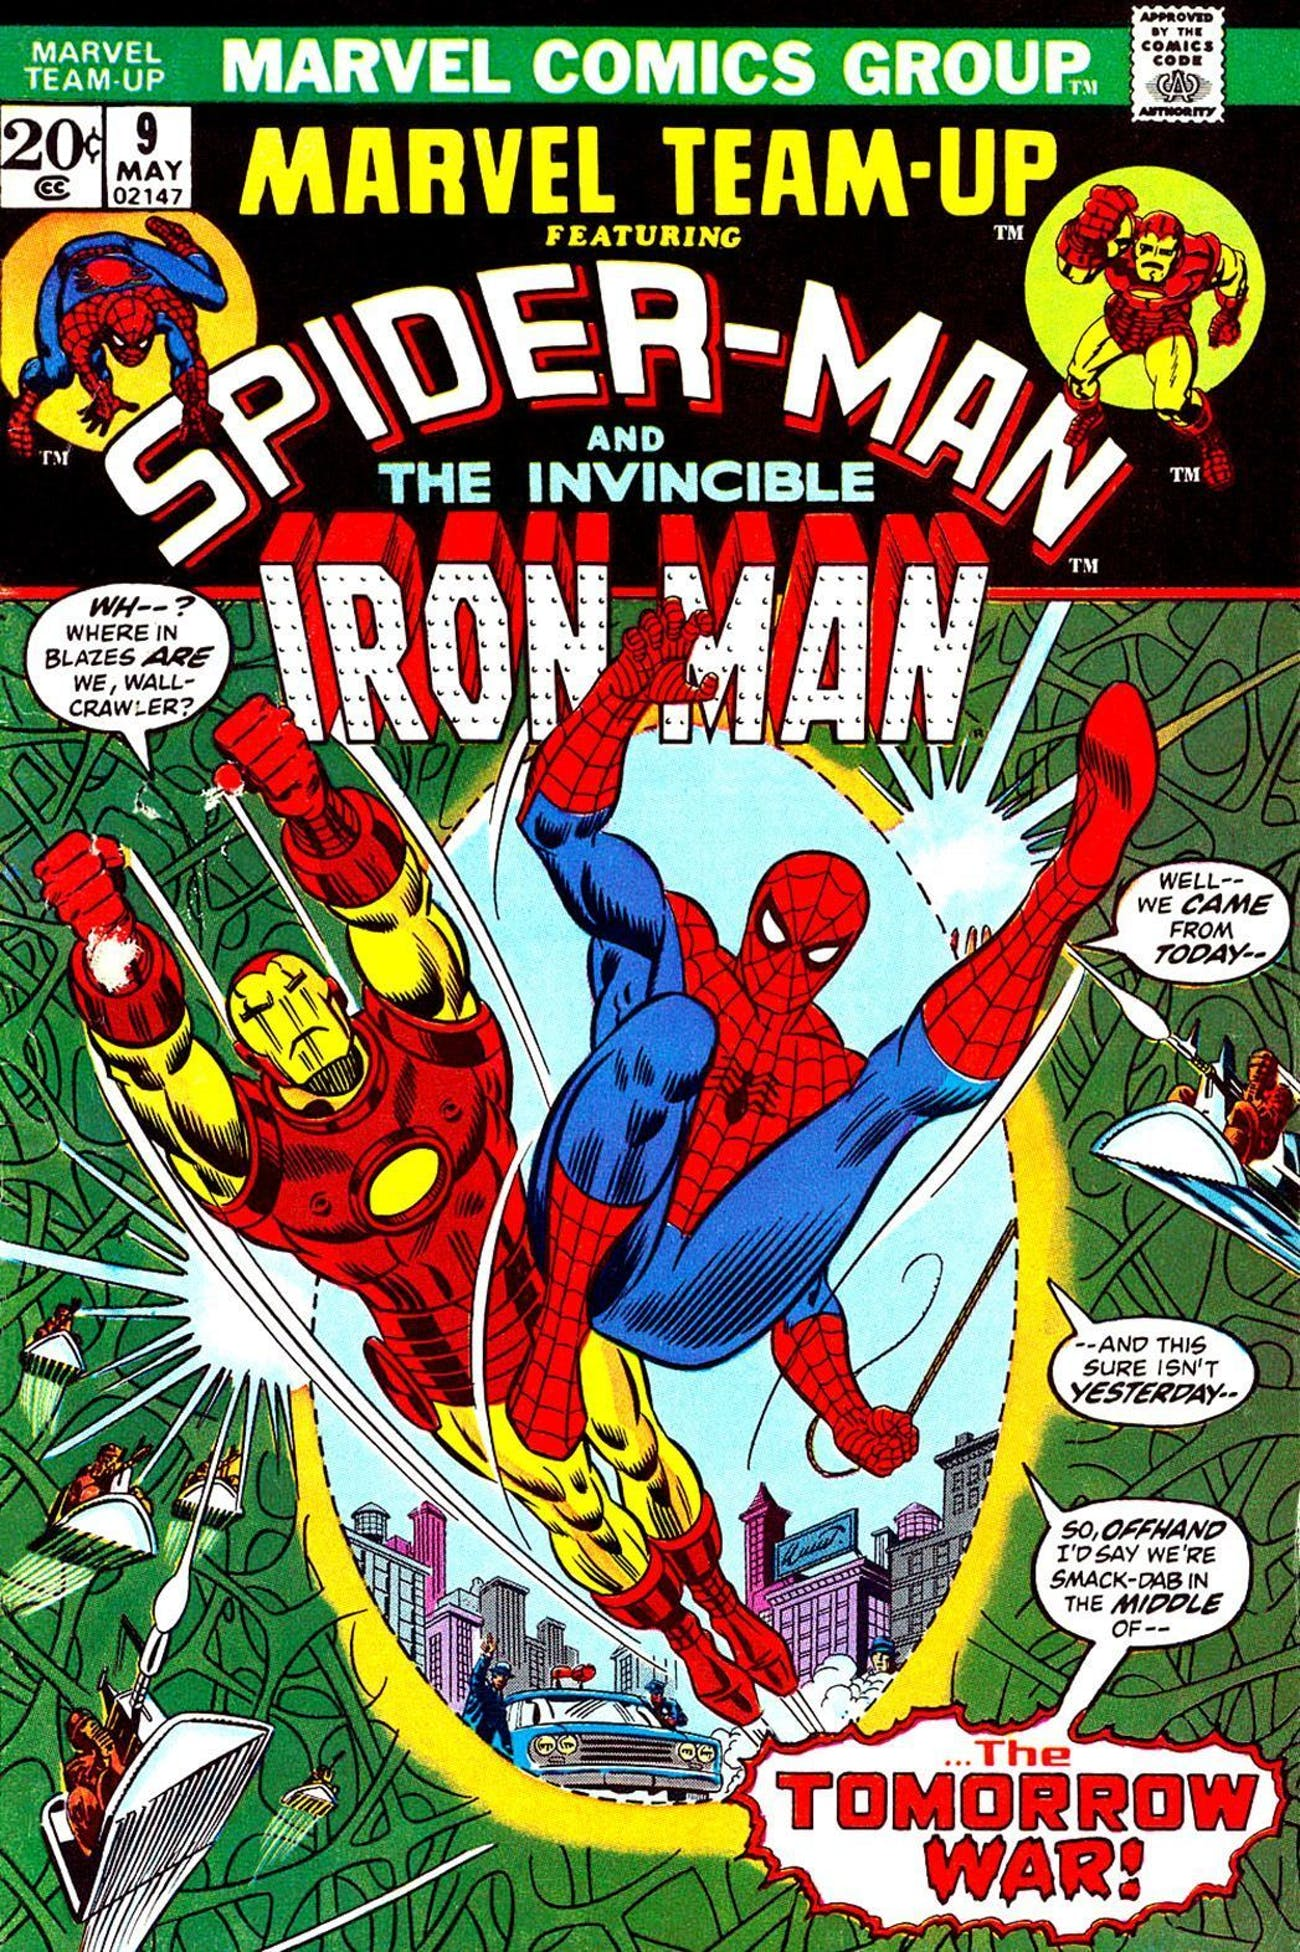 Spider-Man and Iron Man's Friendship Throughout the Years